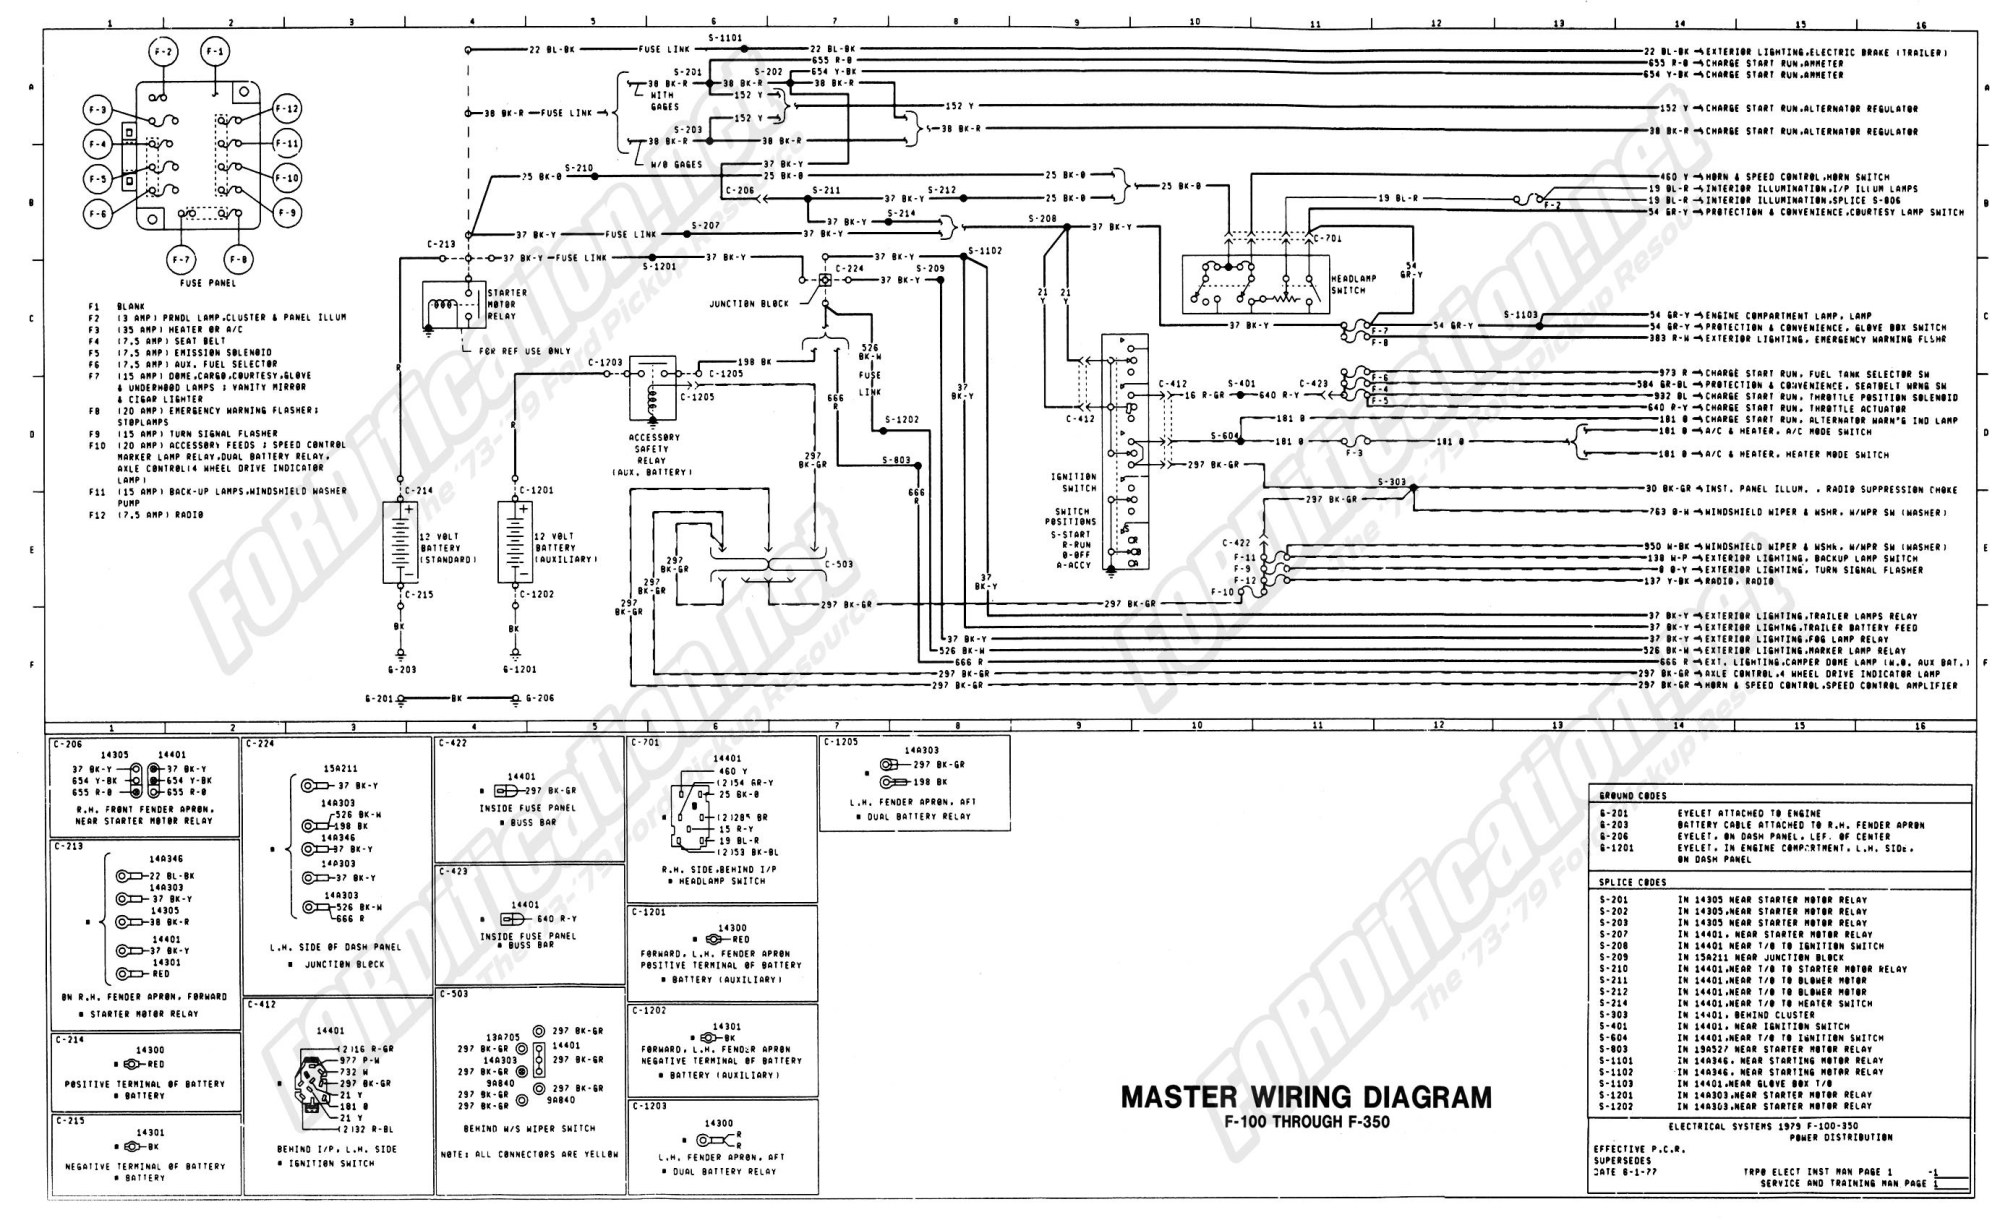 hight resolution of 79 f150 fuse diagram ford truck enthusiasts forums blog wiring diagram 1970 fuse panel diagram ford truck enthusiasts forums